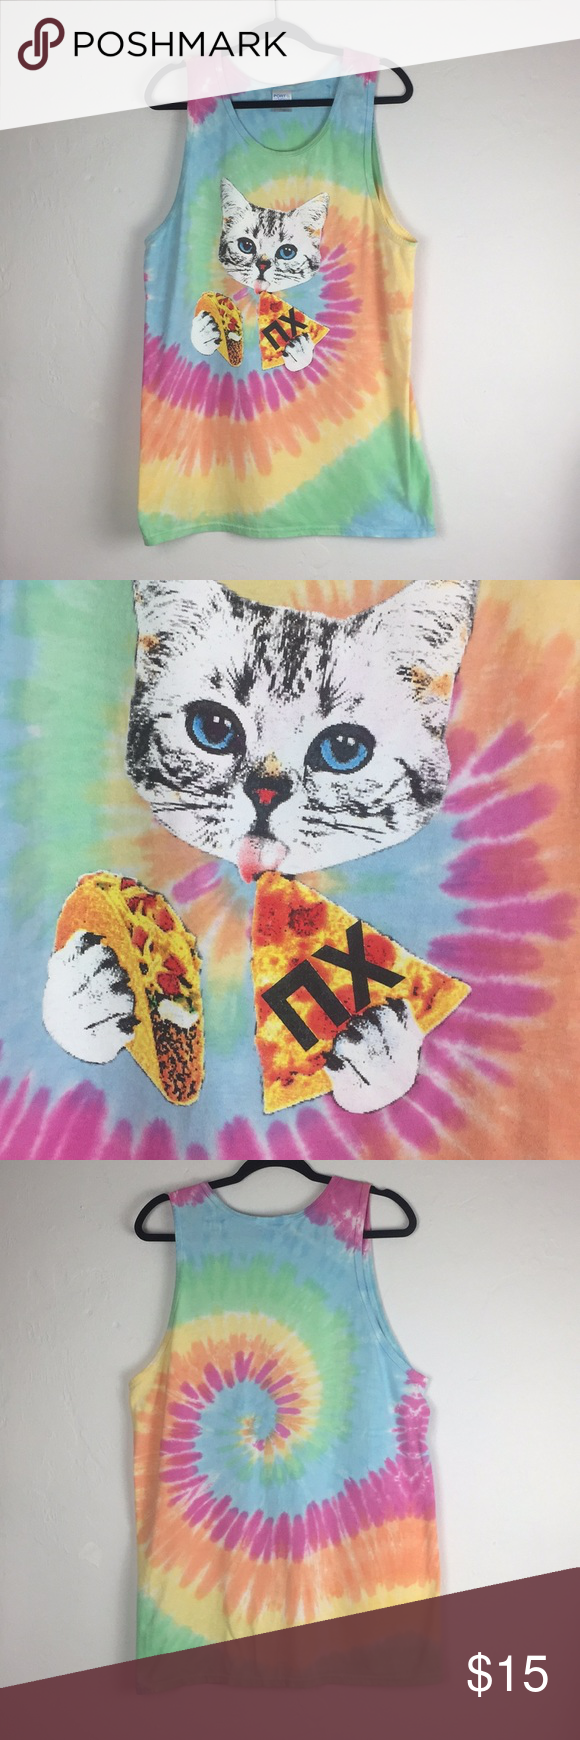 Cat eating taco and pizza tie dye tank cat lovers Tie